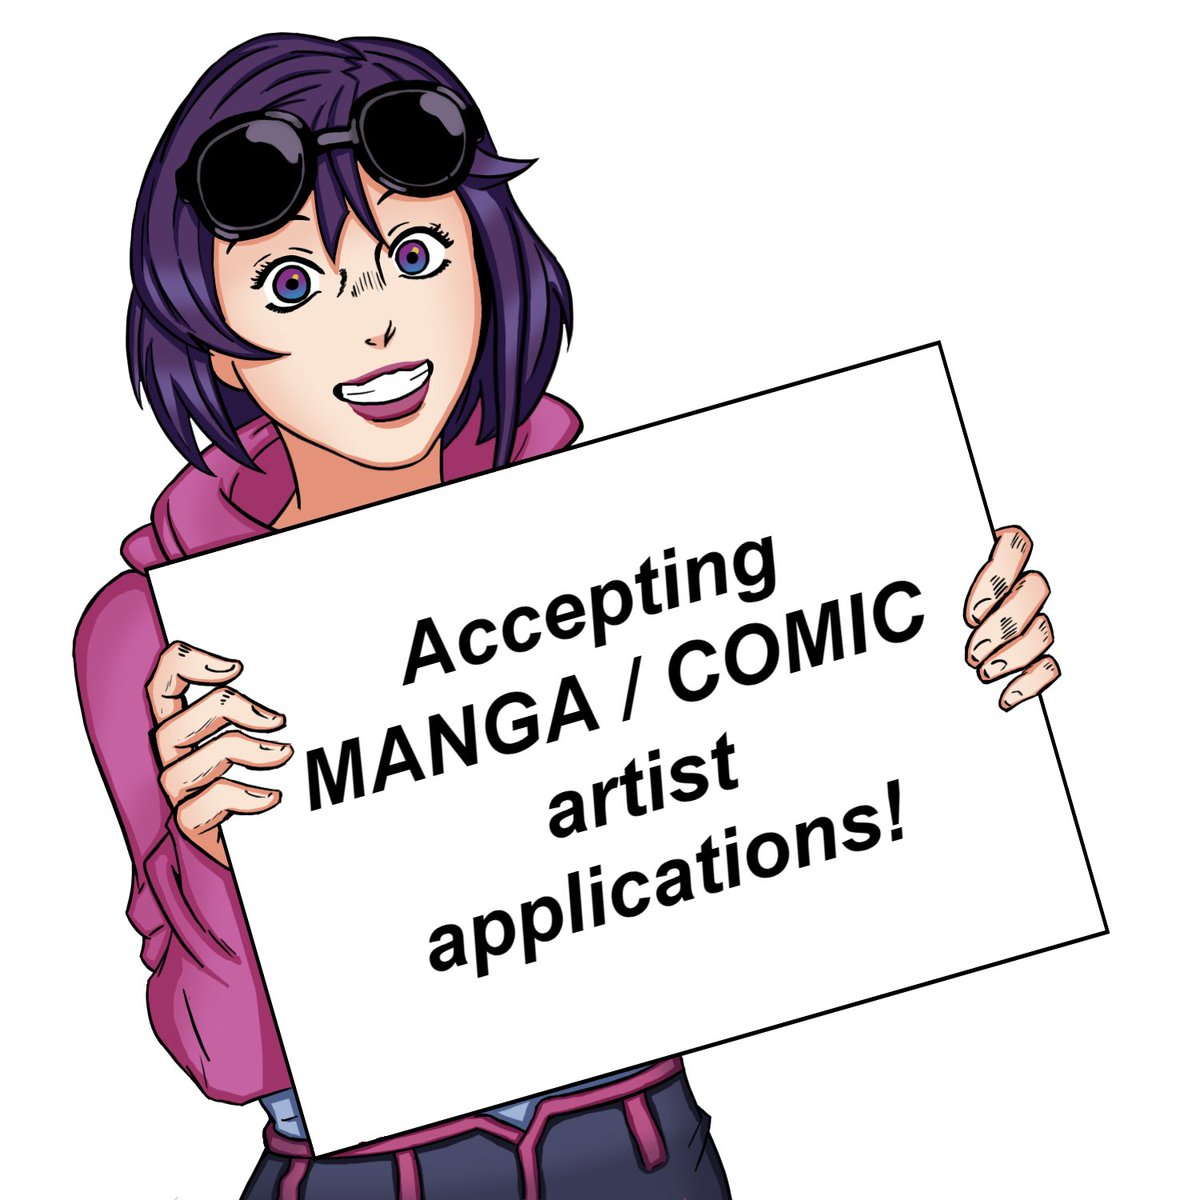 Shizuka Joestar Project On Twitter As Our Team Is Getting Into Producing The Manga We Re Actively Looking For More Artists Capable Of Imitating Araki S Style So If You Or Anyone Else Is